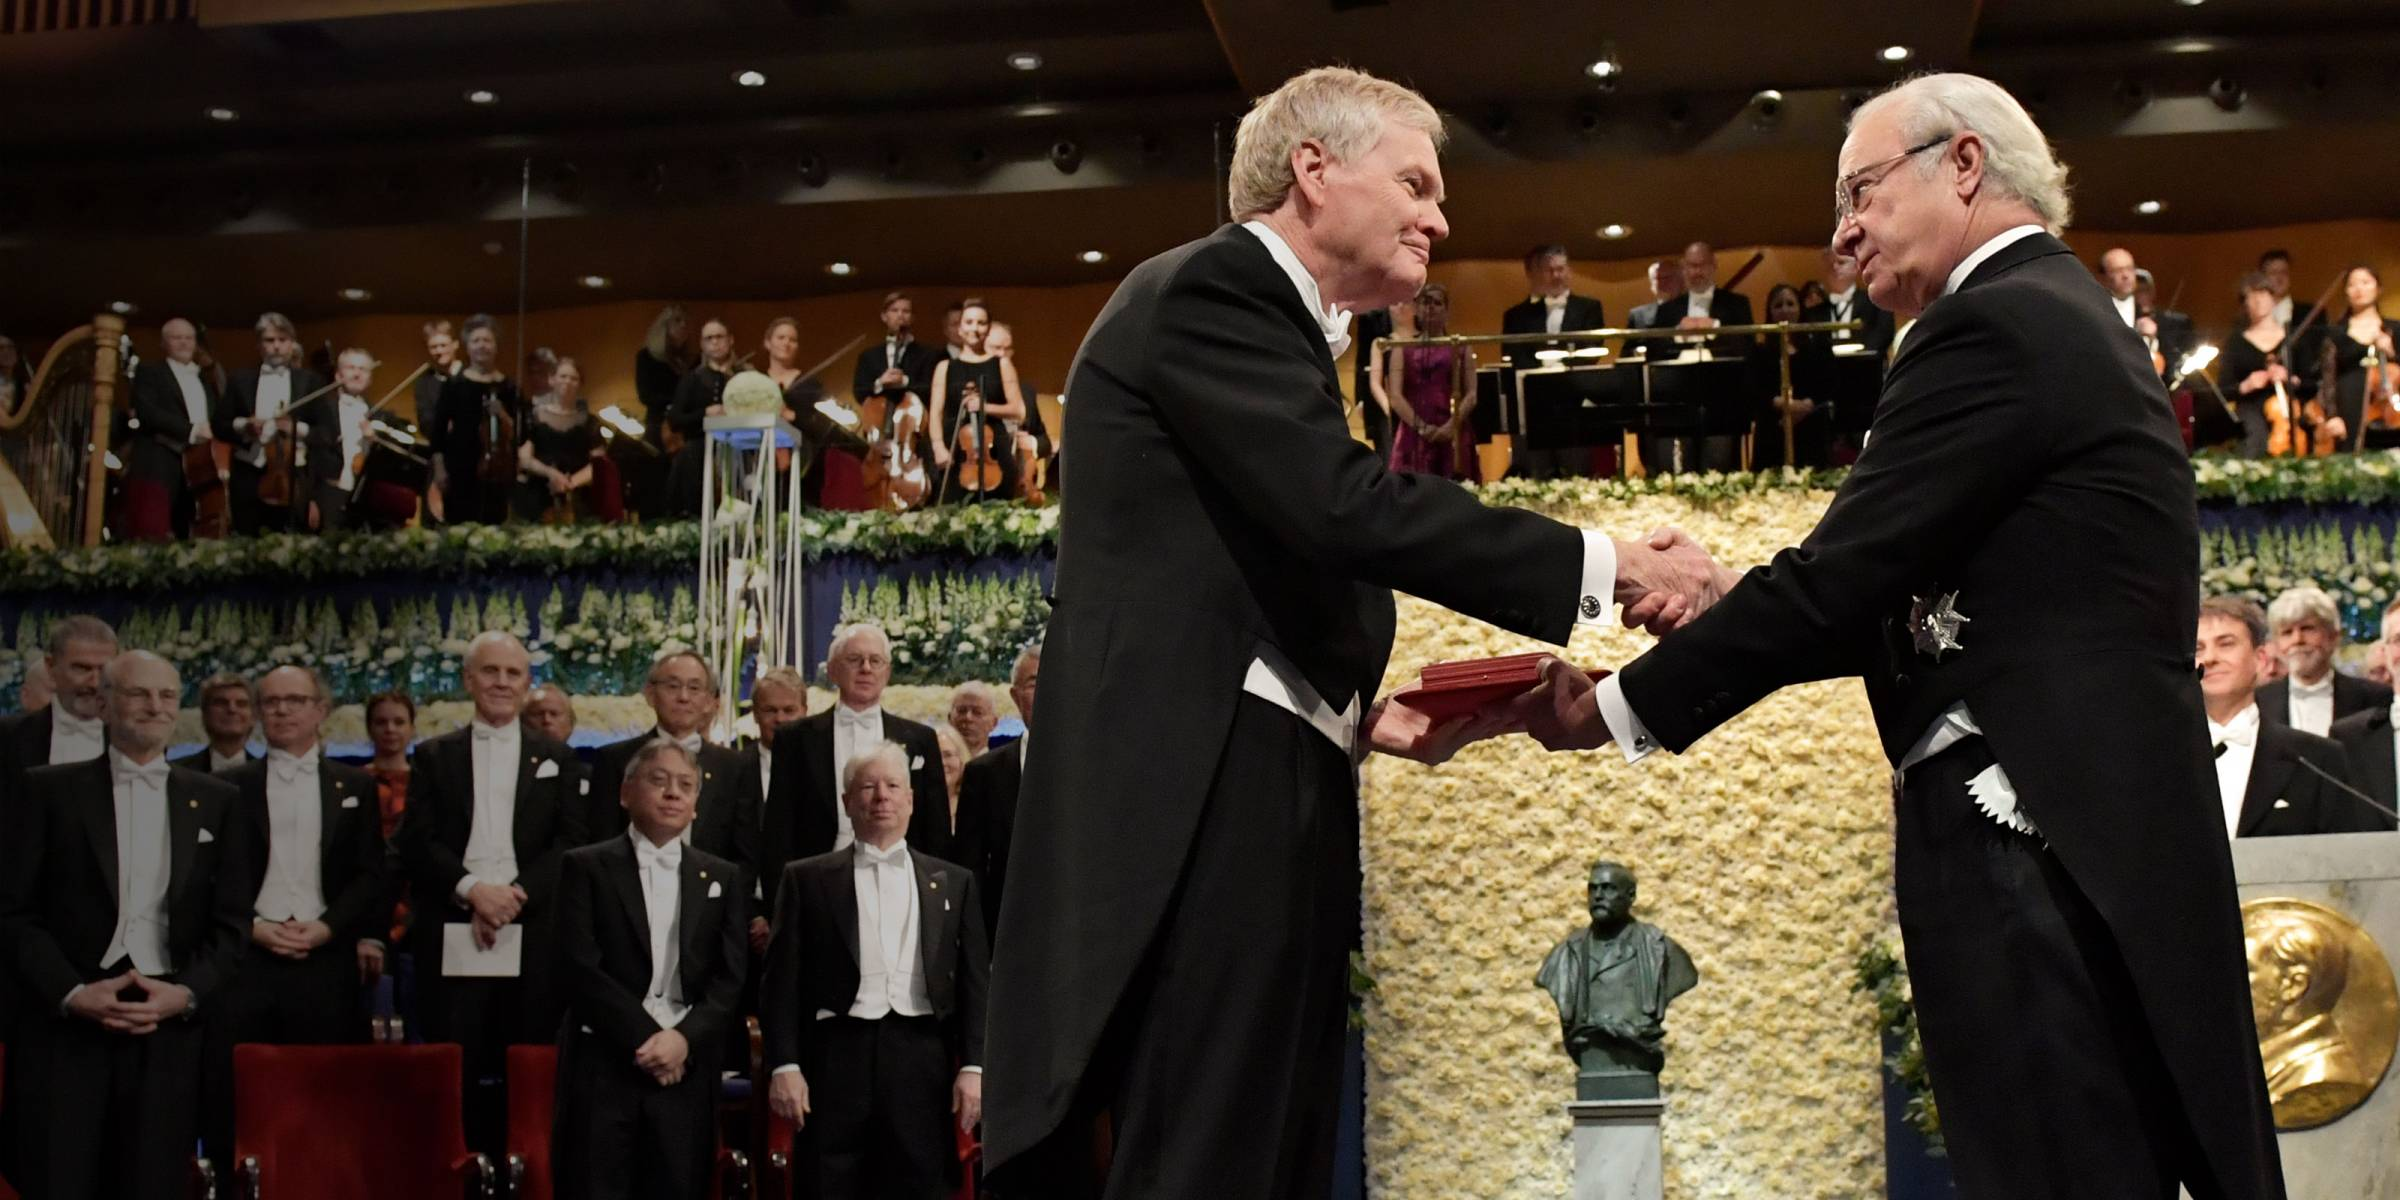 Michael W. Young receives the 2017 Nobel Prize